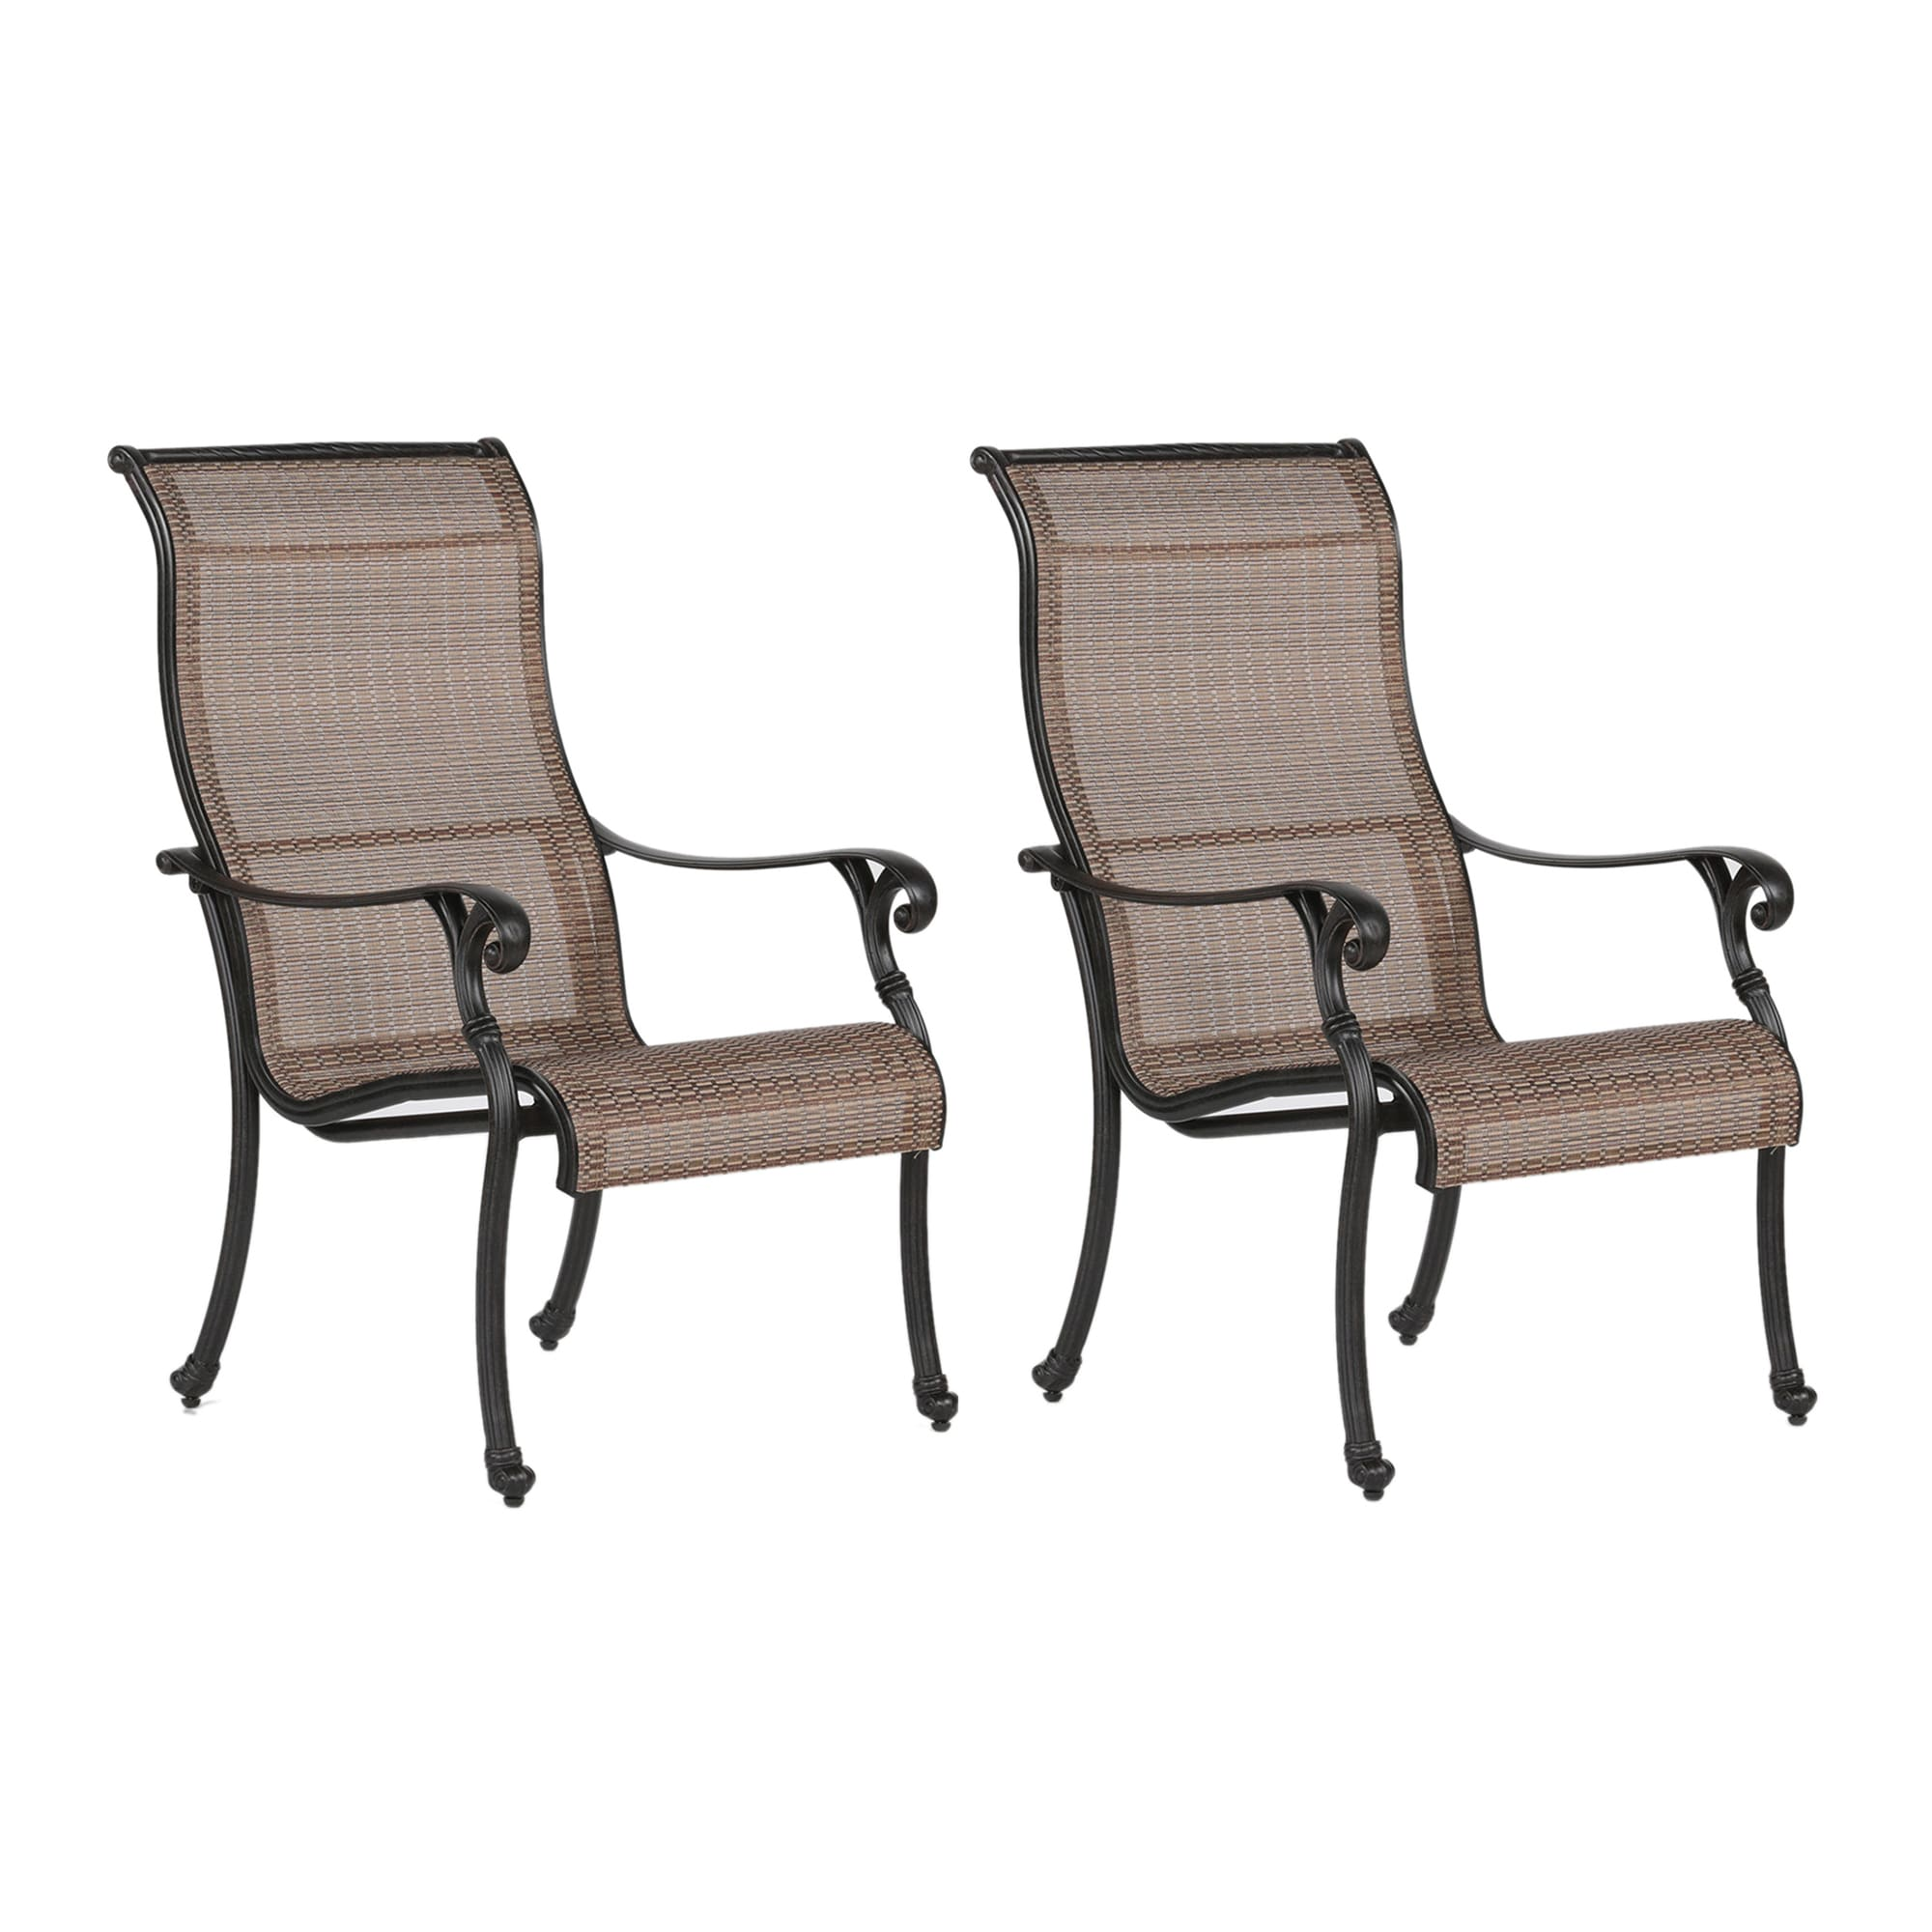 Shop yorkshire brown black synthetic fiber aluminum sling dining chair free shipping on orders over 45 overstock com 16945203